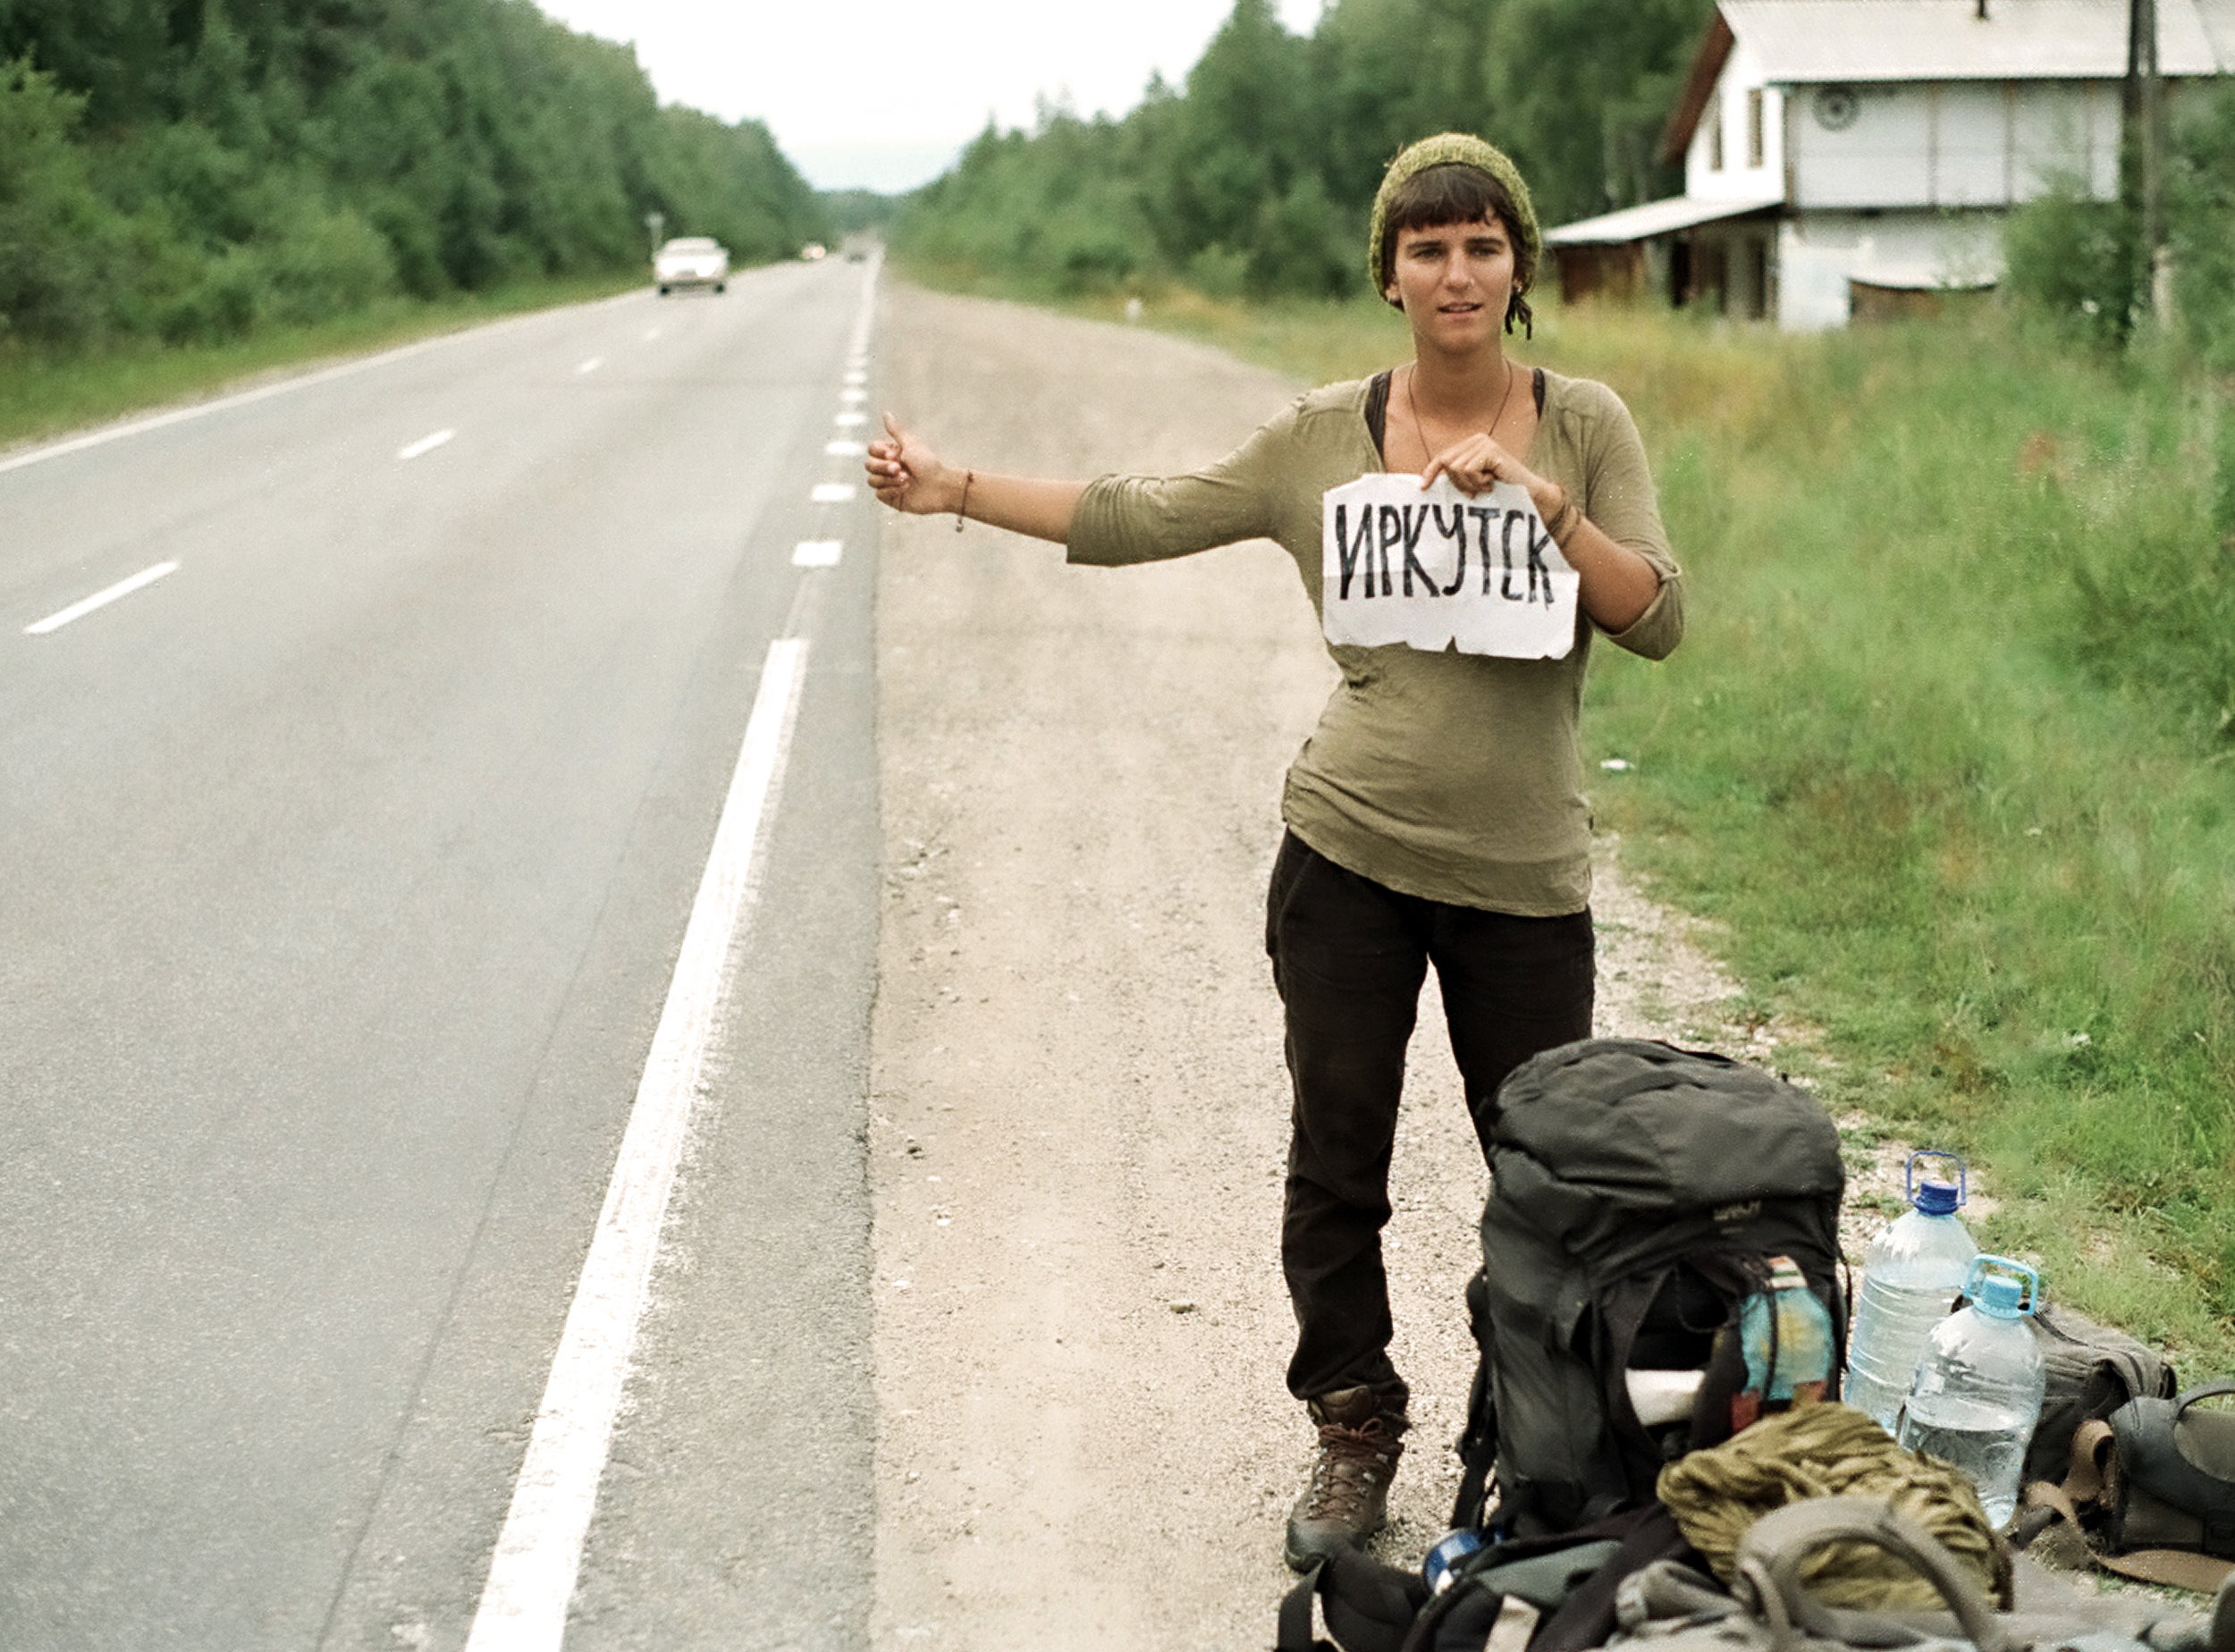 It's summer in Siberia as Gwen tries to get a lift to Irkutsk